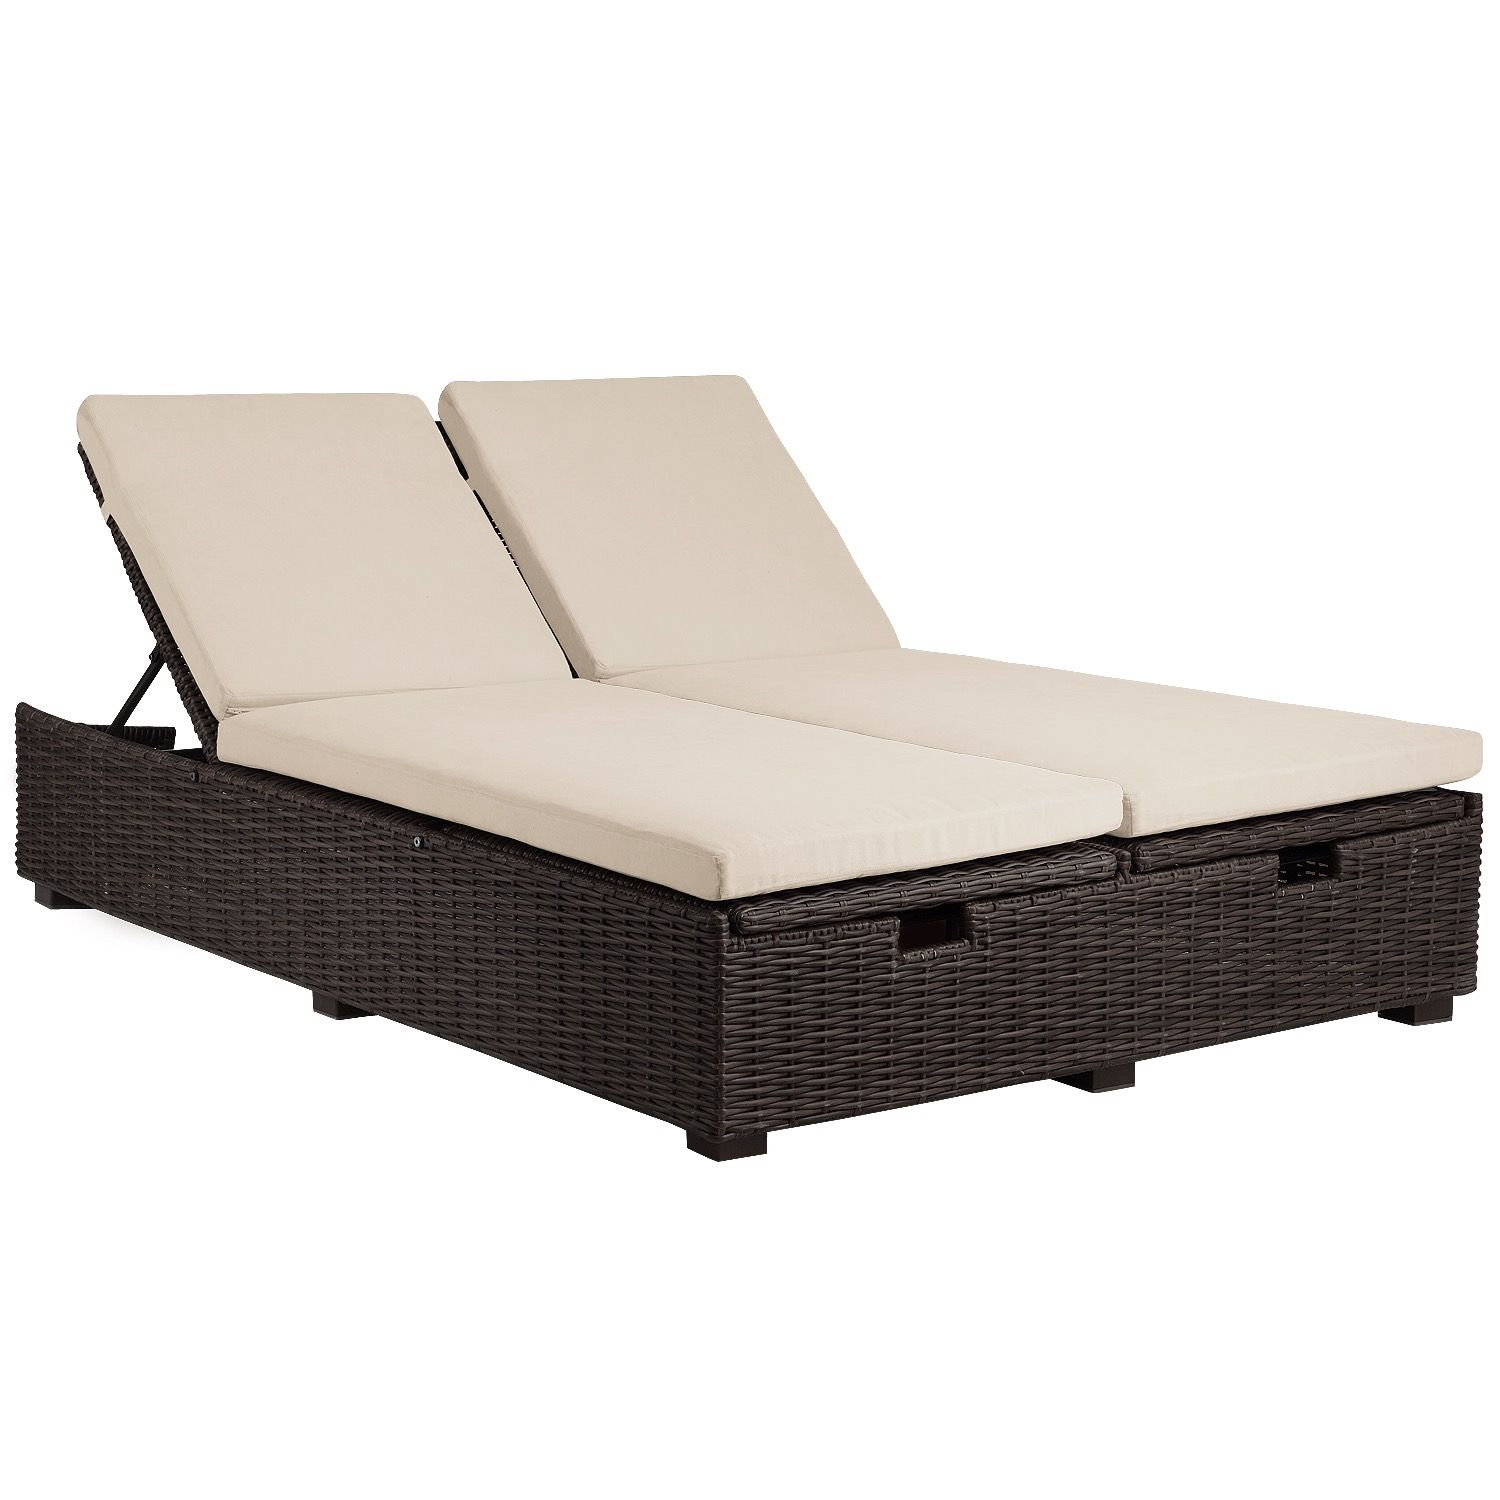 Echo Beach Tobacco Brown Double Chaise Lounge Double Chaise Lounge Outdoor Couch With Chaise